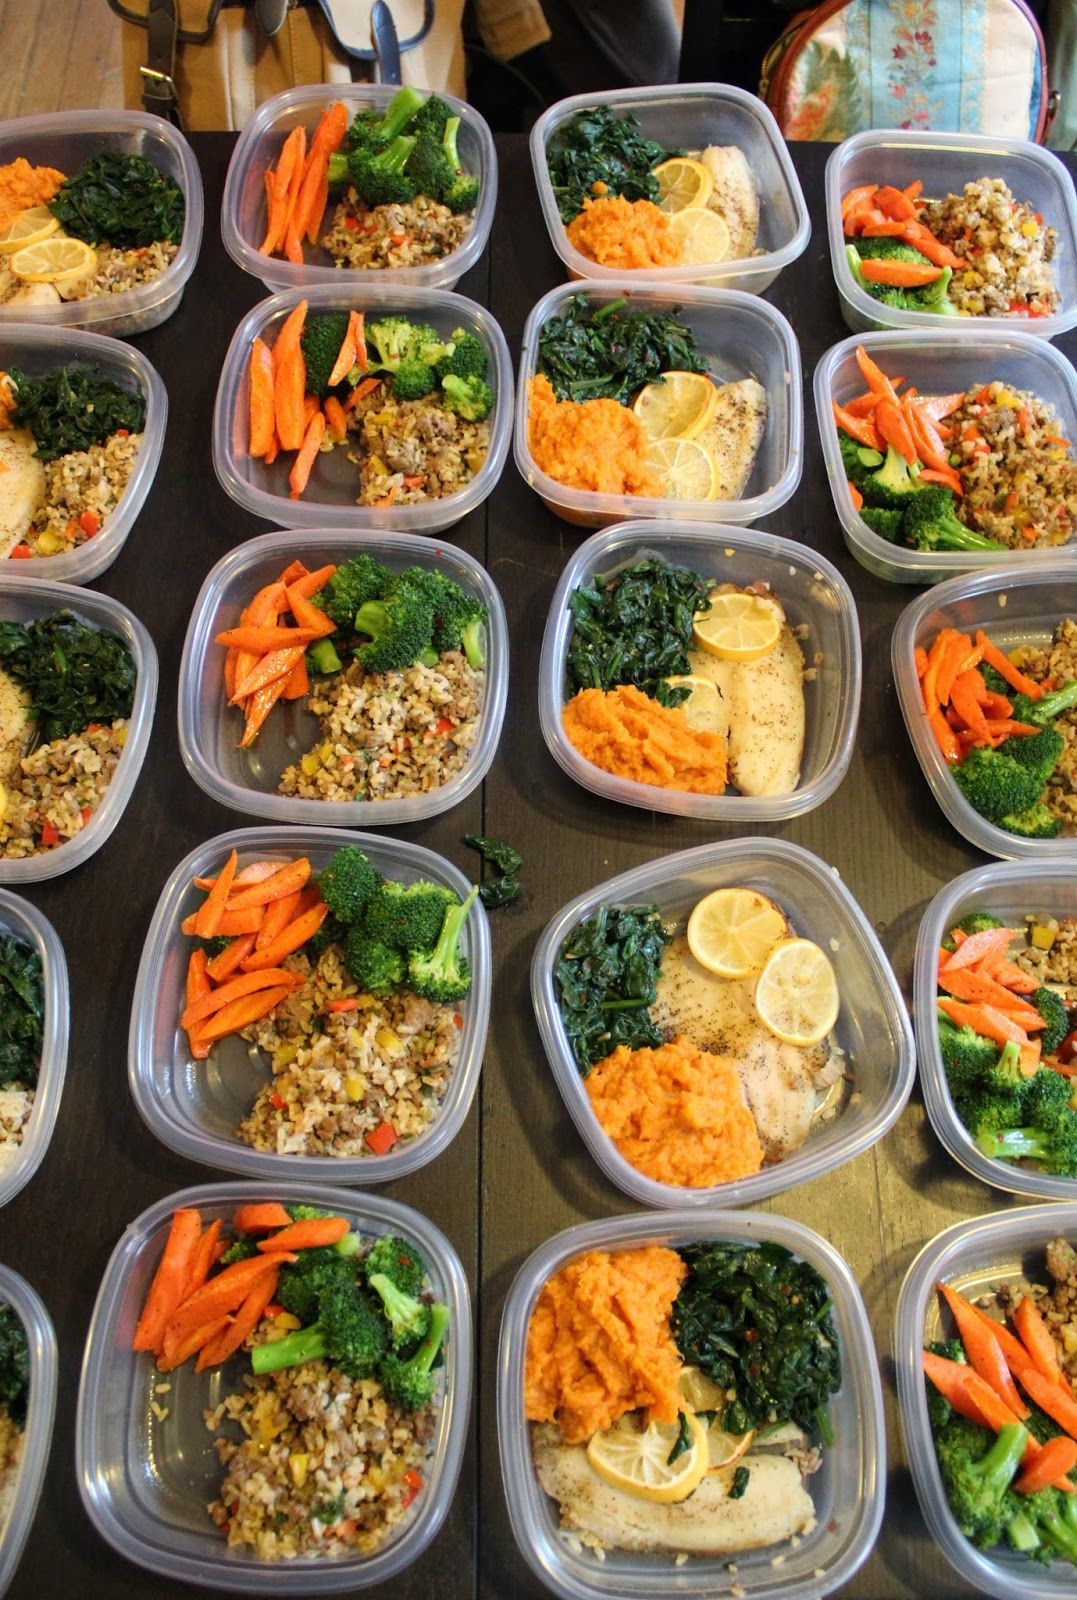 Mealprep Expert Tips For Easy Healthy And Affordable Meals All